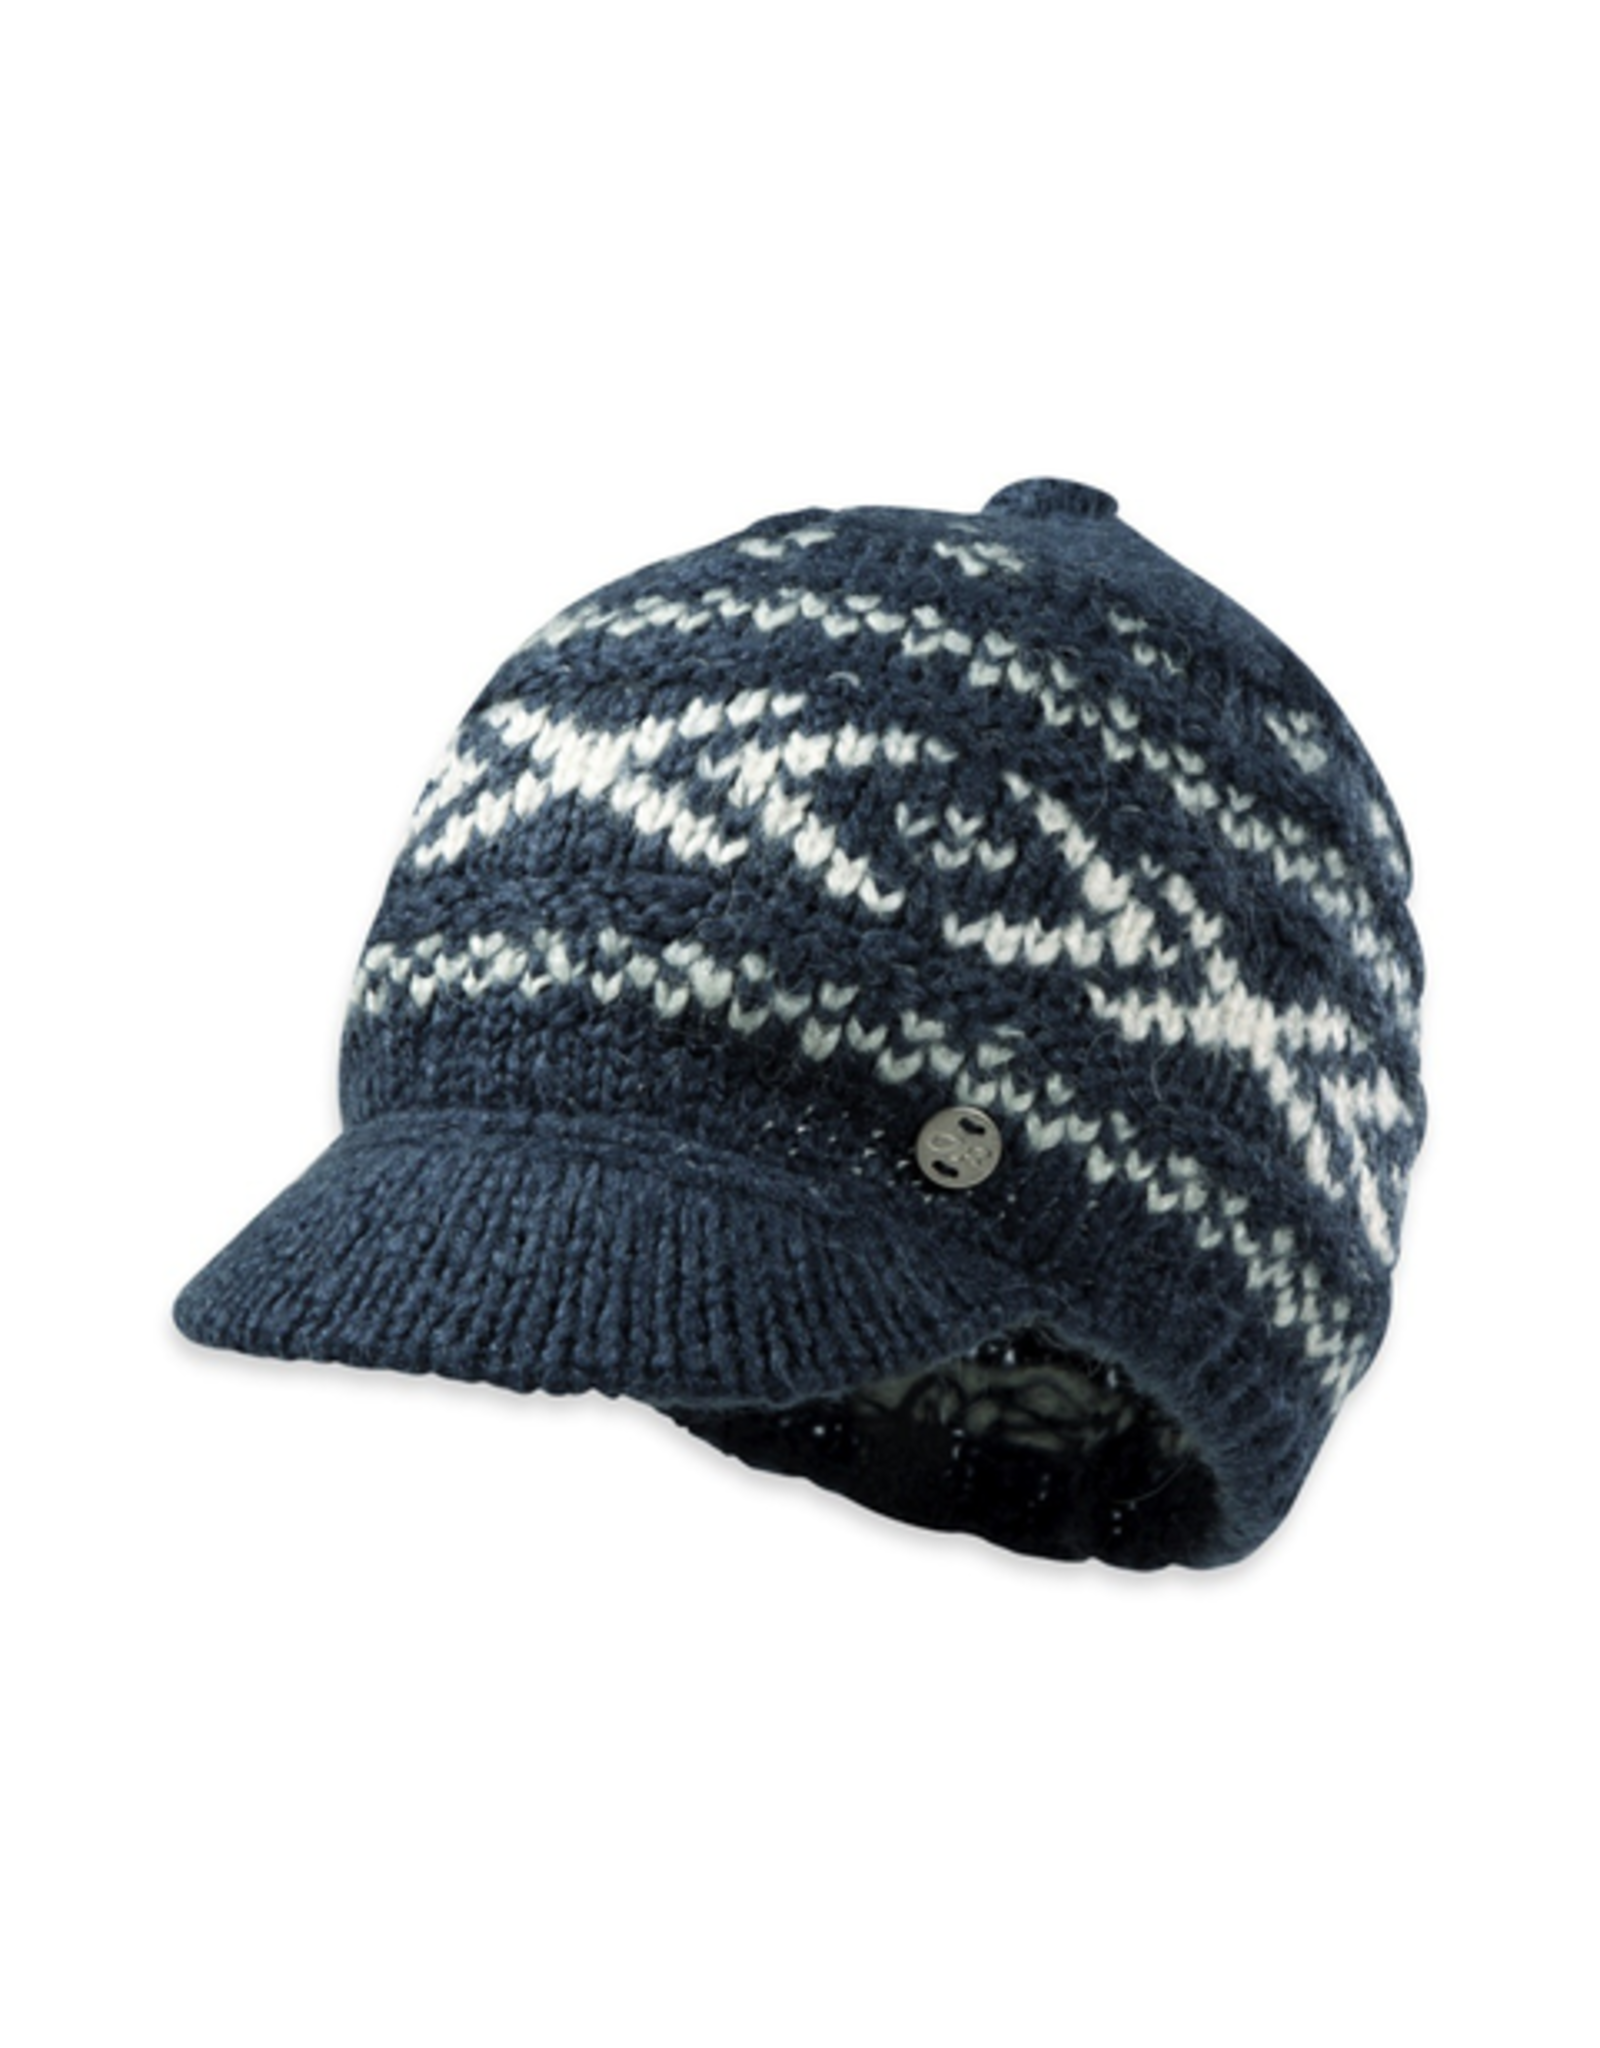 Outdoor Research Outdoor Research Womens Karia Beanie